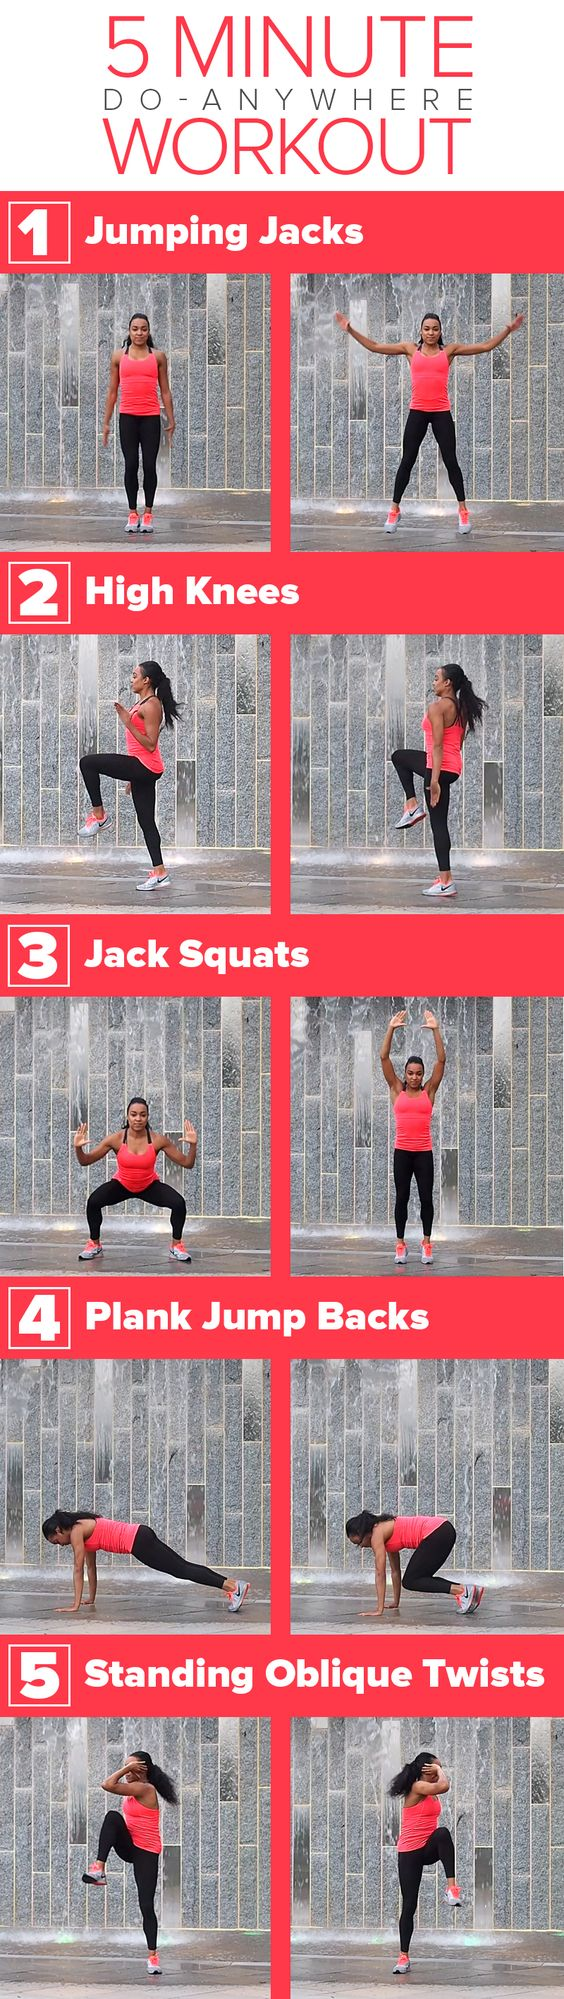 There's no equipment required for this 5-minute full body workout routine.: